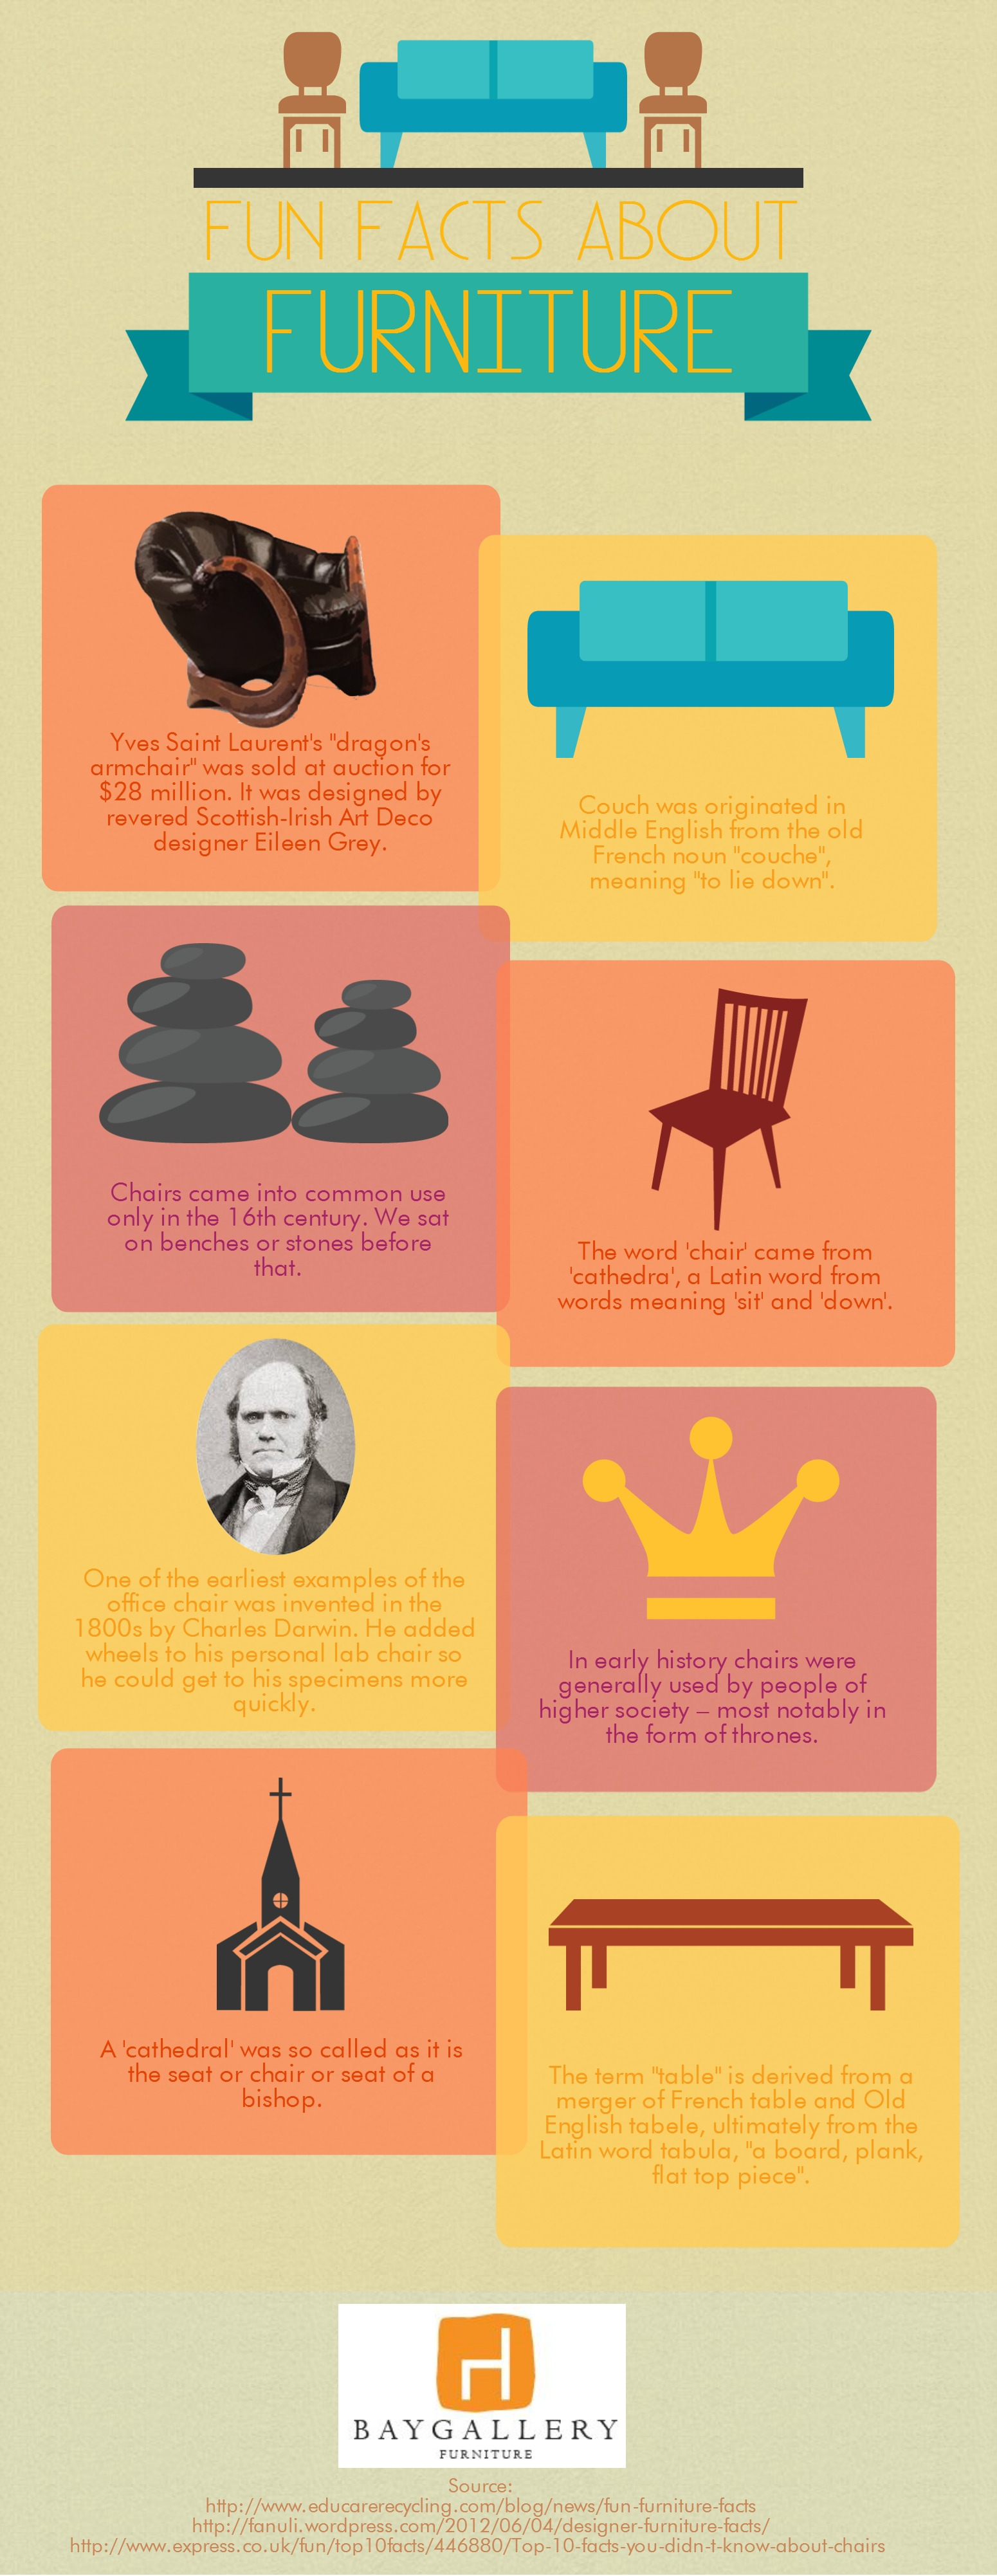 Fun Facts About Furniture